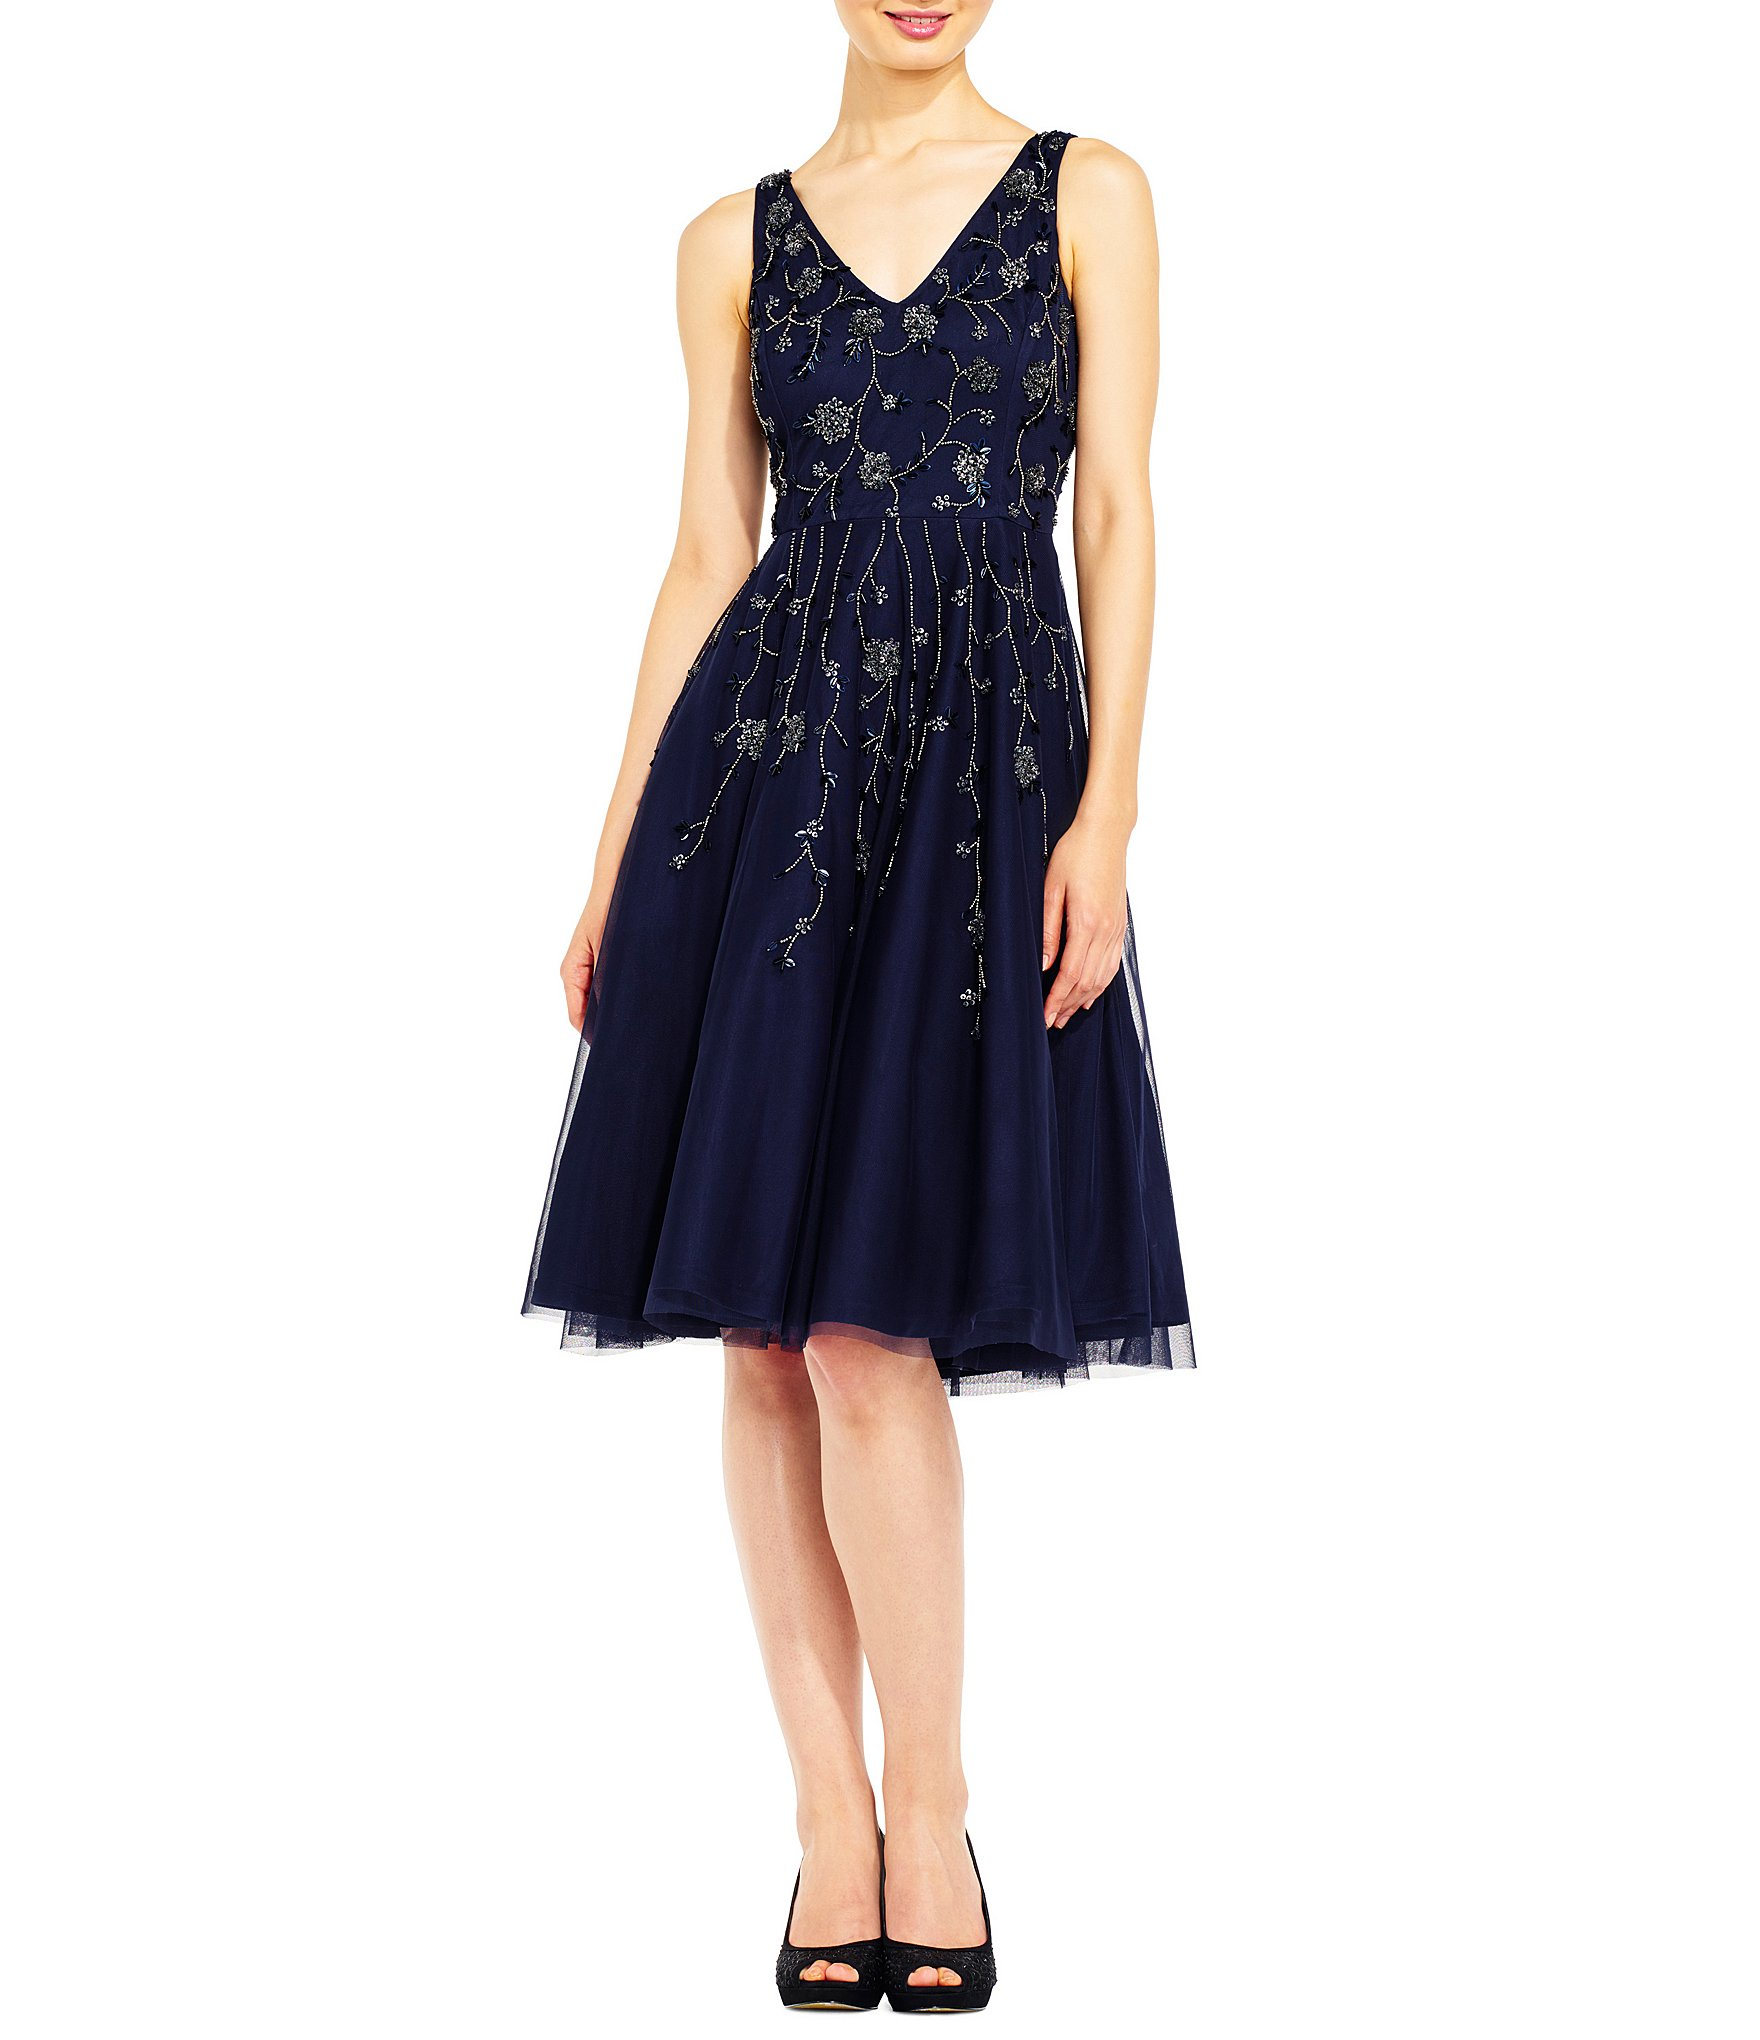 Adrianna Papell Women\'s Dresses & Gowns | Dillards